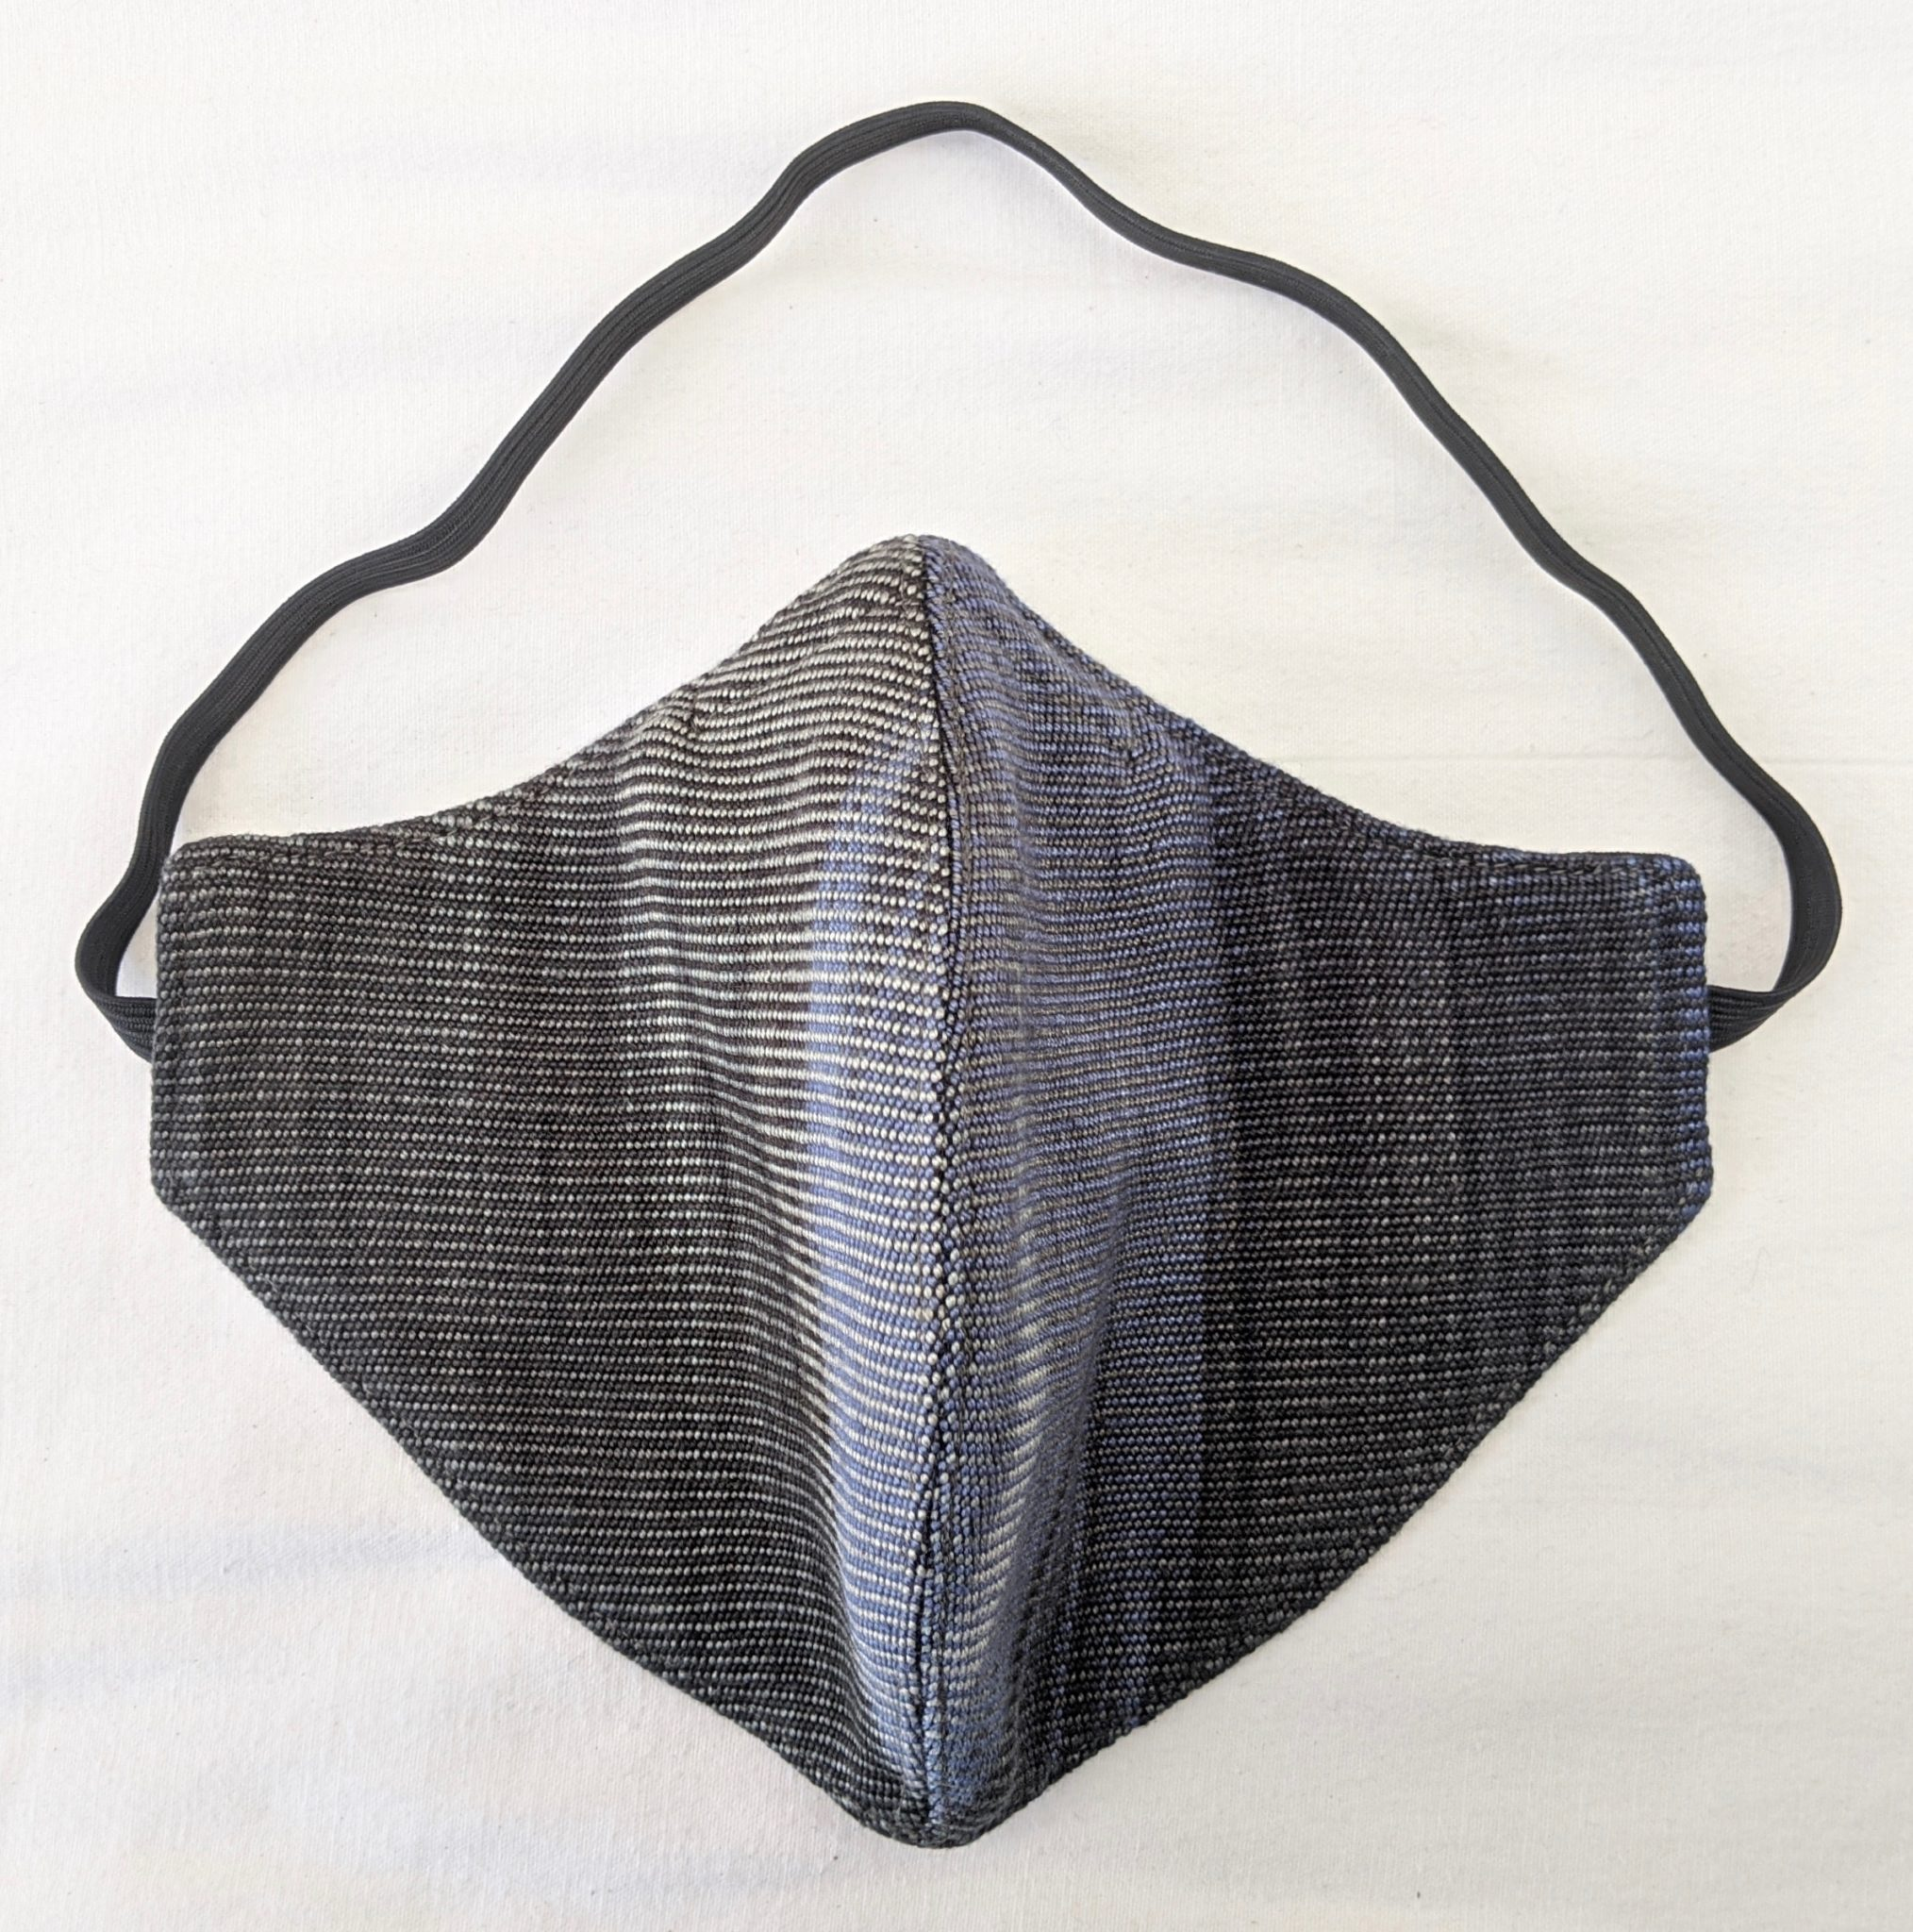 Handwoven Lightweight Bamboo Face Mask with Elastic Behind Head - Blue, Grays, Black